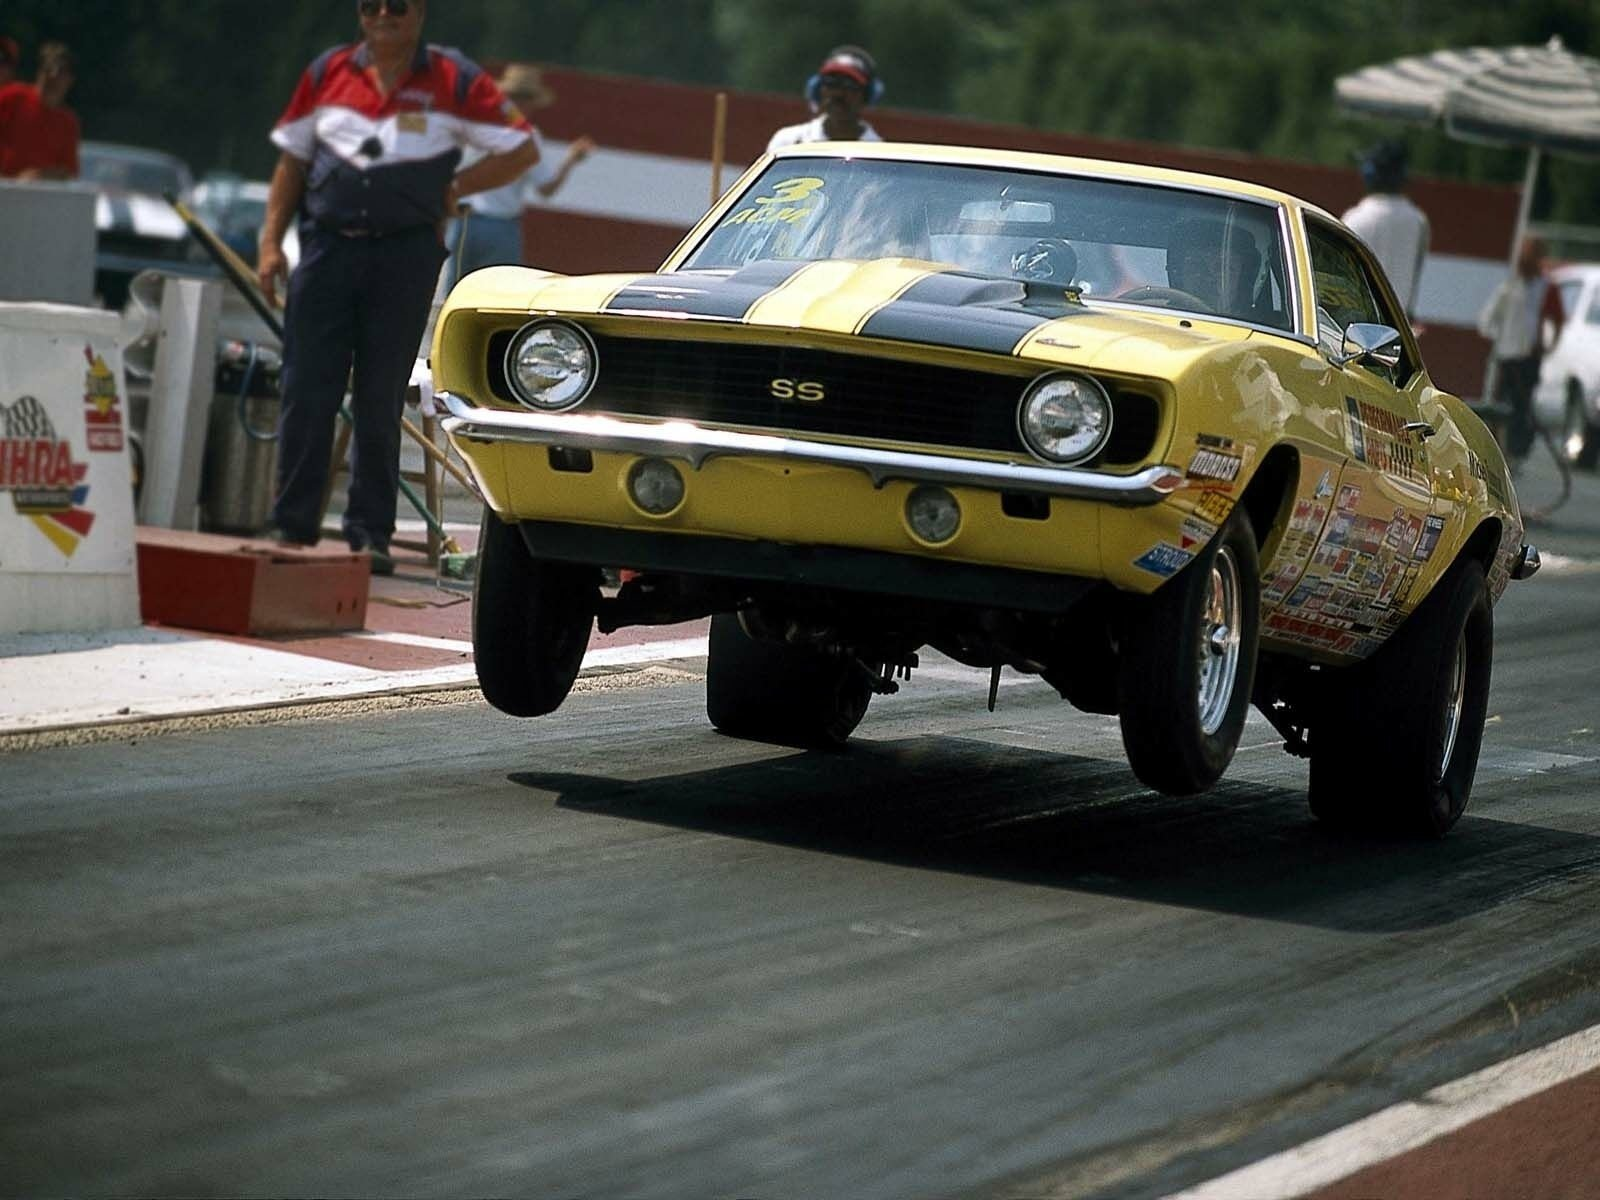 1969 chevrolet camaro ss wallpaper and background image - Drag race wallpaper ...